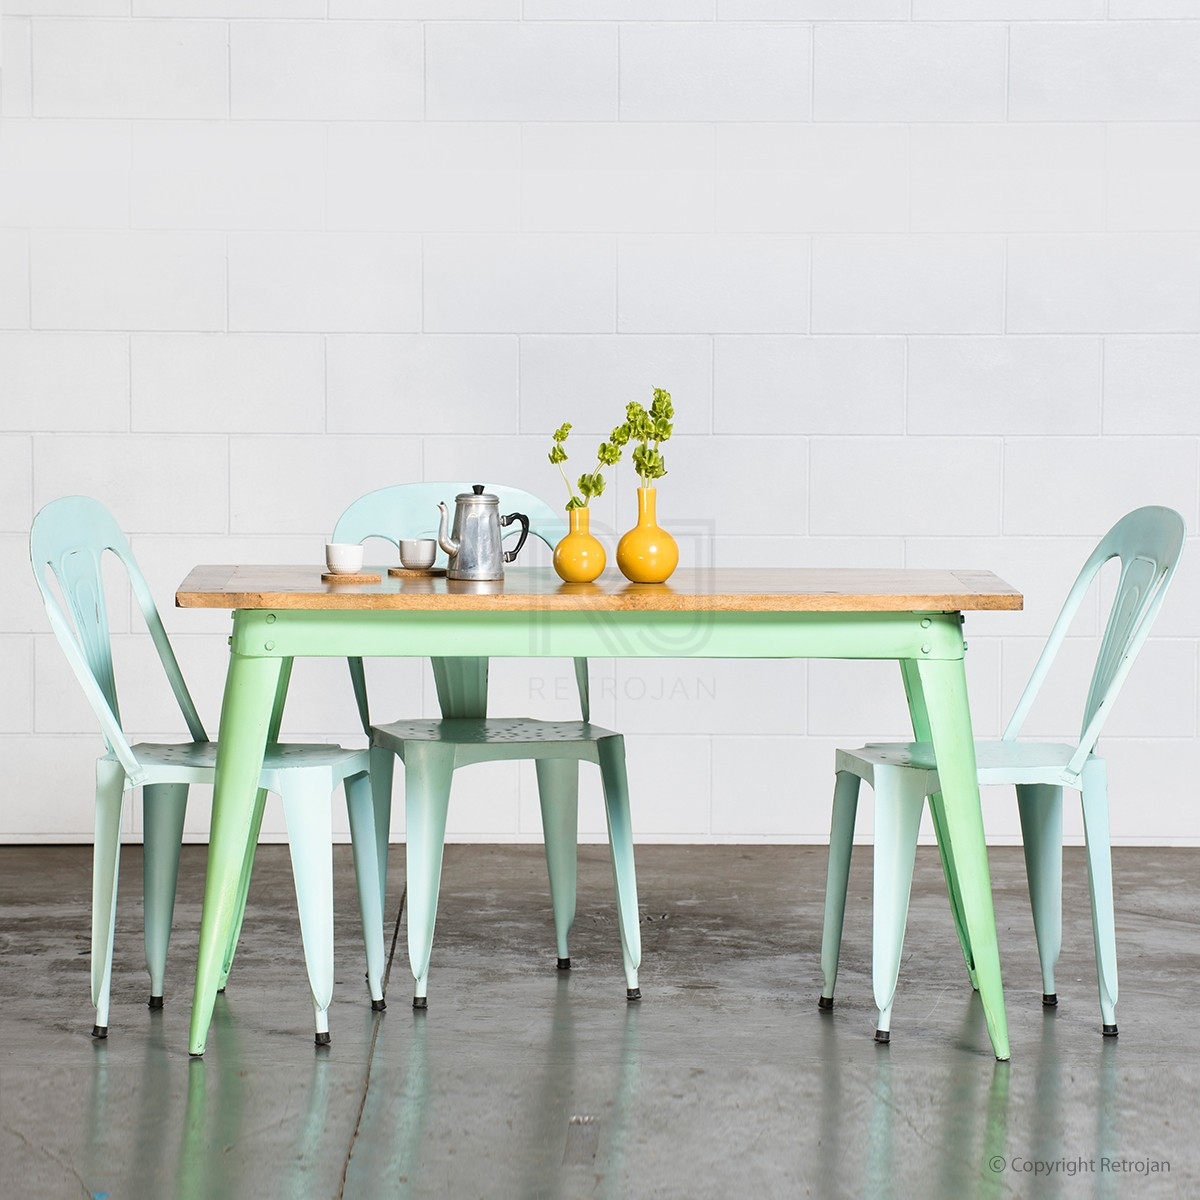 Mint kitchen table